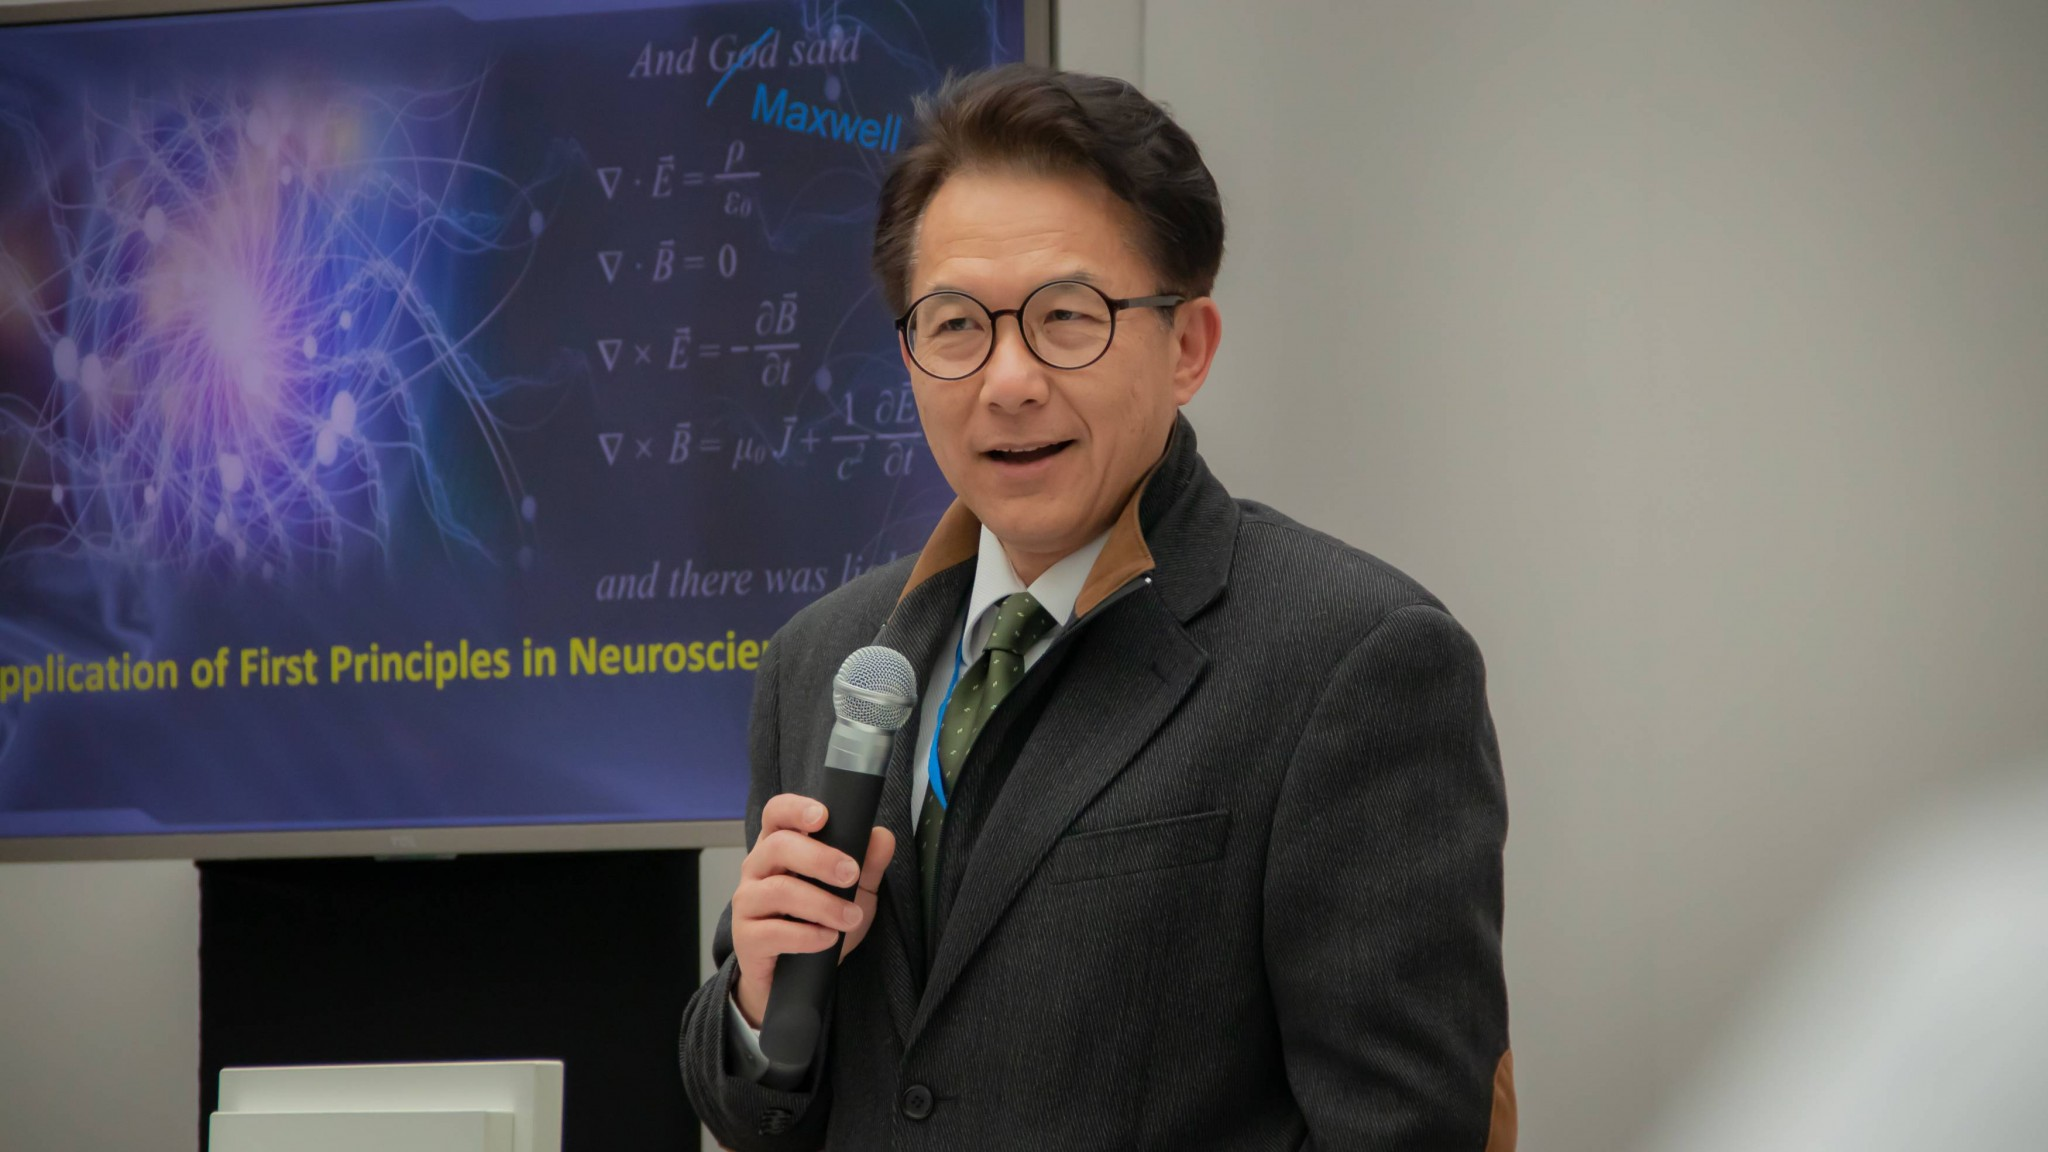 Image: Yi Jin (Research Scientist, USC Neuro-restoration Center and Director, Brain Treatment Center)